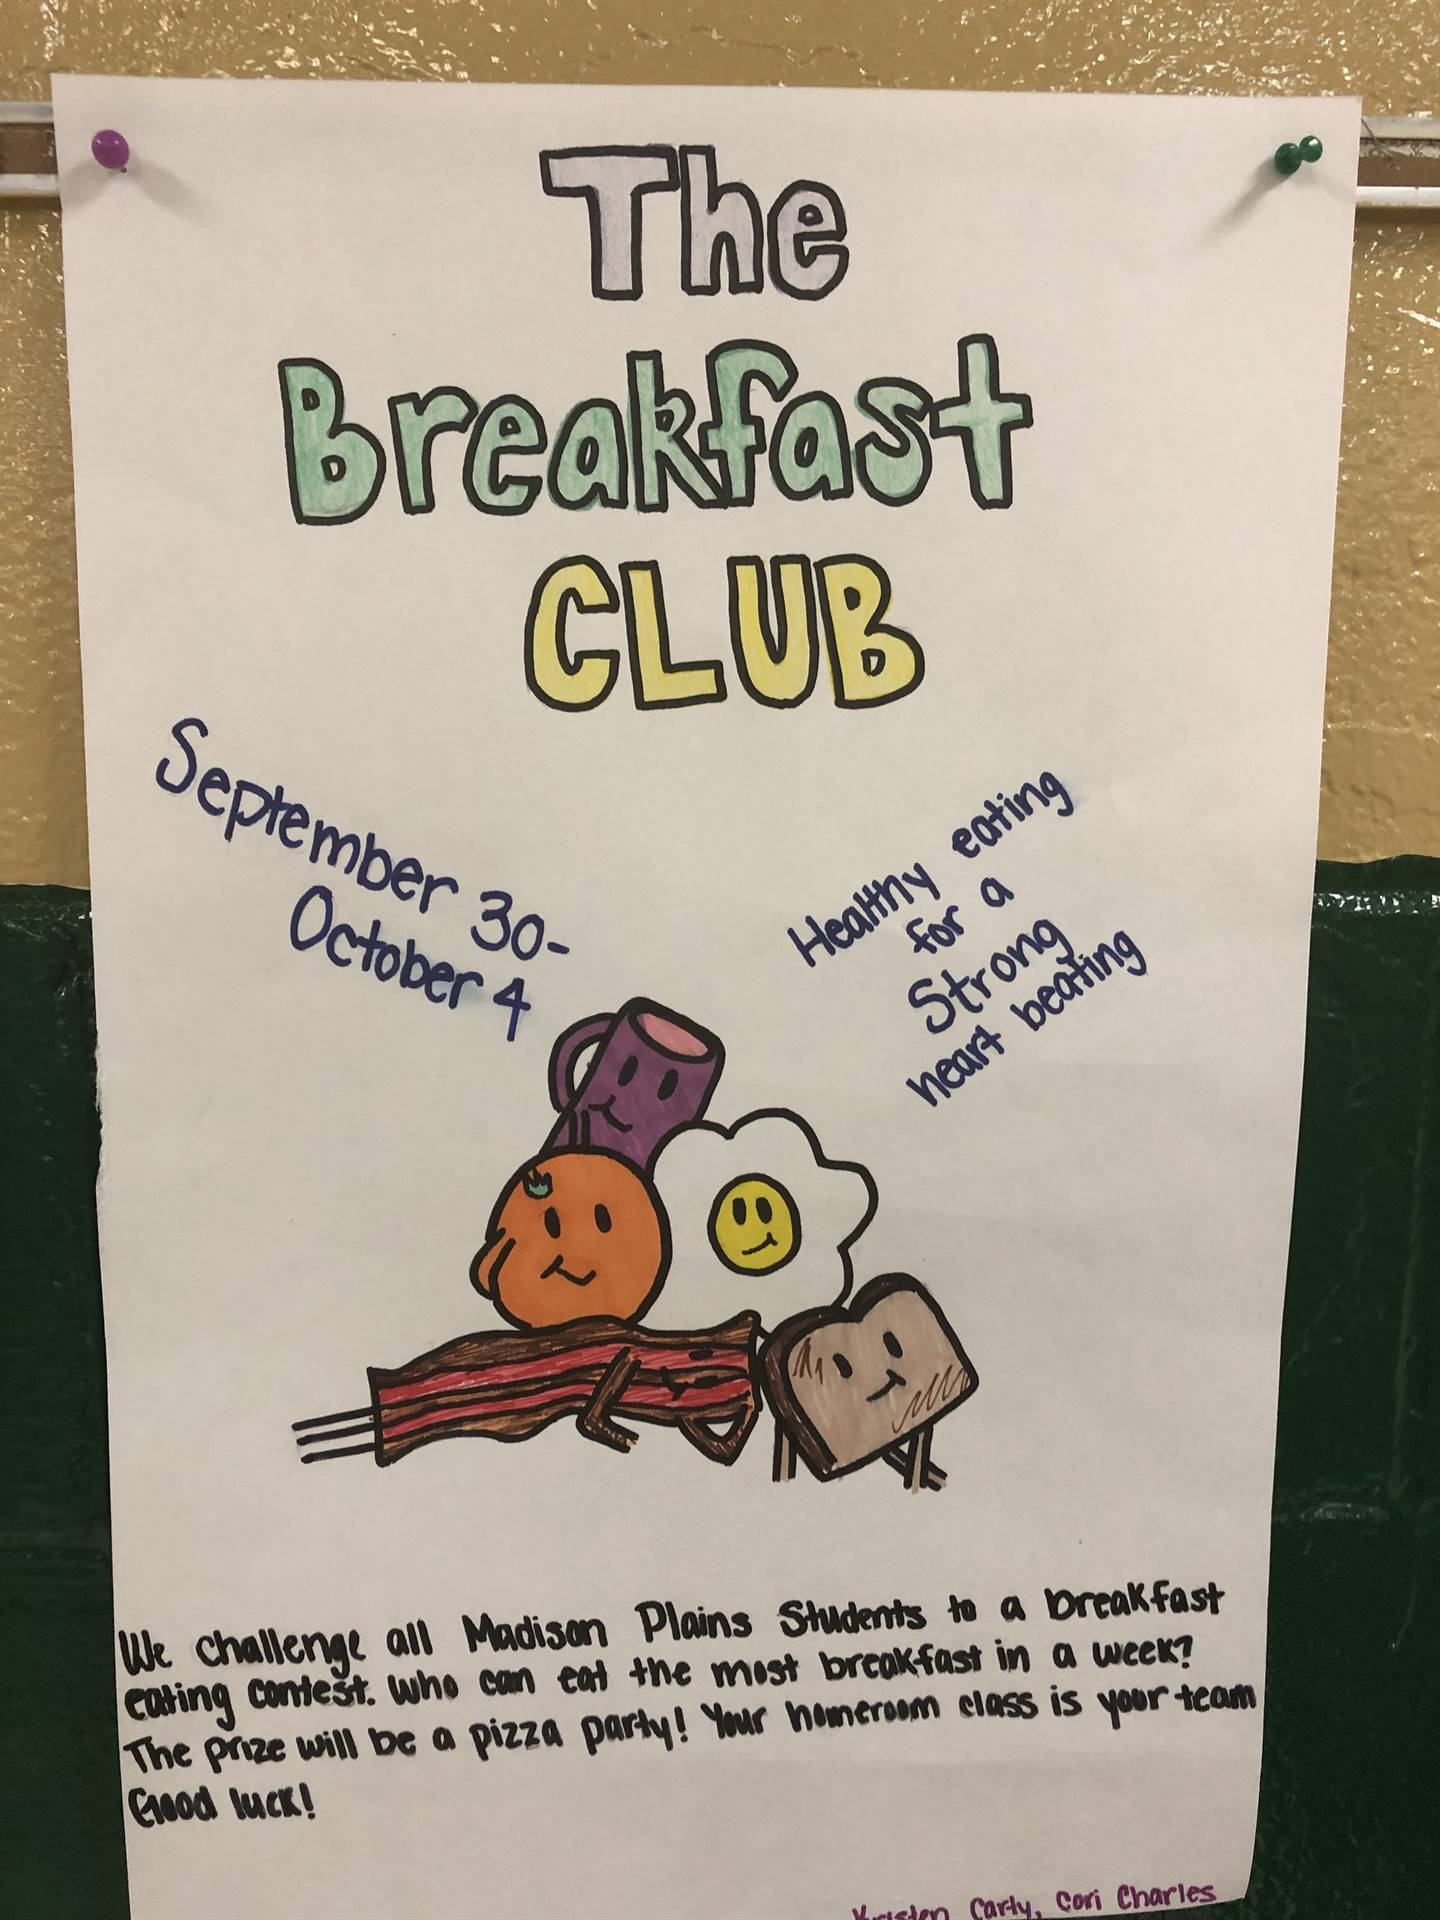 This week, the JR/HS cafeteria and FCCLA have collaborated to promote breakfast. Mrs Jarvis' classes